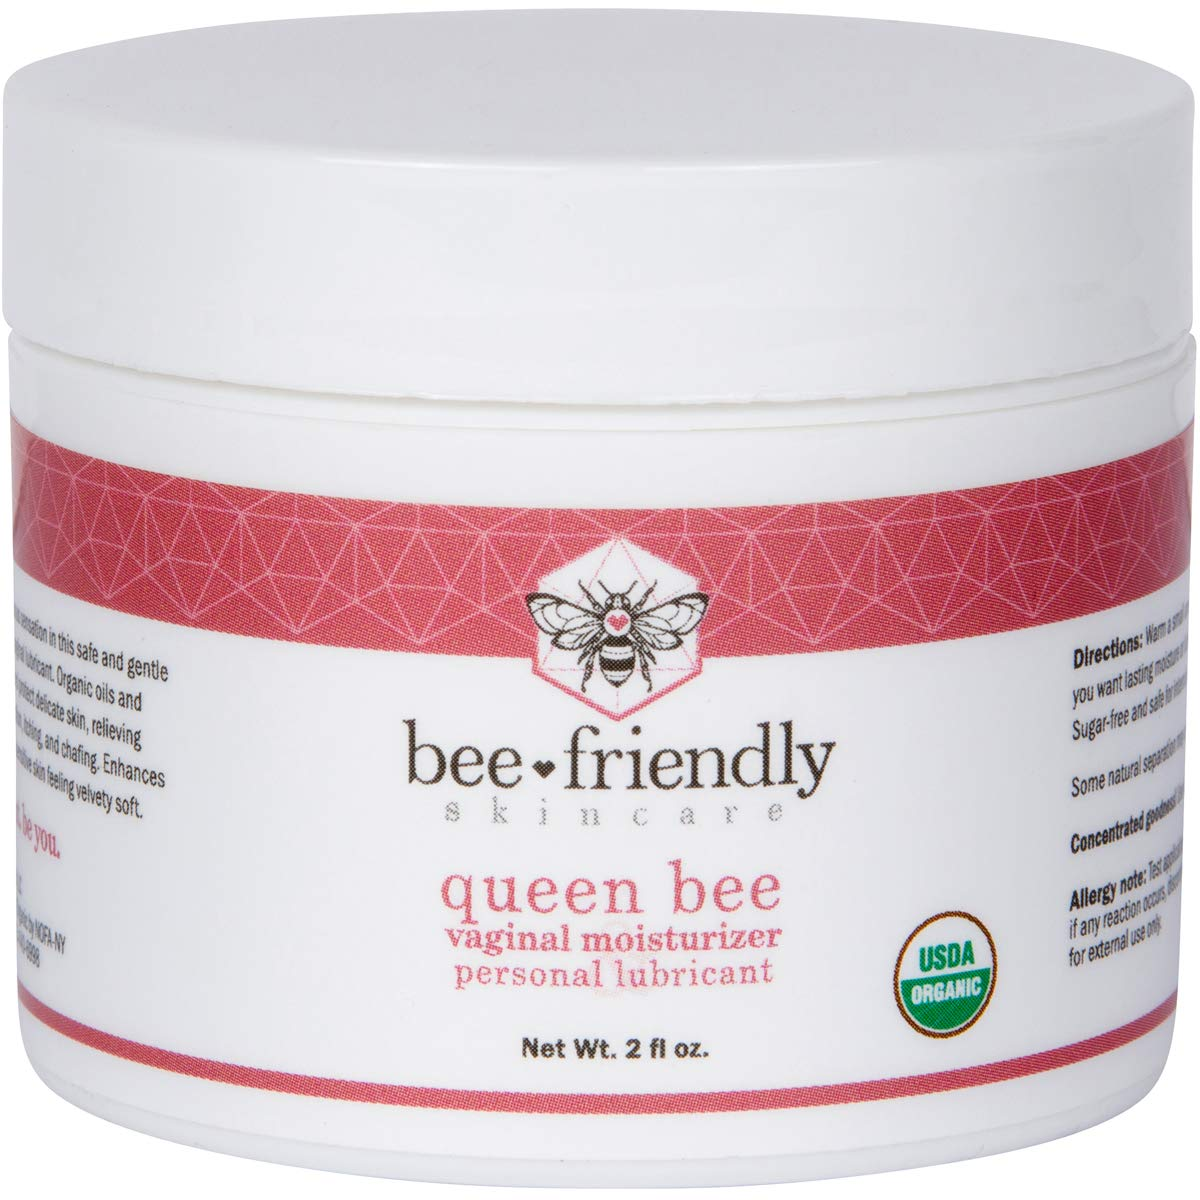 Organic Vaginal Moisturizer & Personal Lubricant By BeeFriendly, USDA Certified, Natural Vulva Cream For Dryness, Itching, Irritation, Redness, Chafing Of Vagina Due To Menopause & Thinning 2 oz by BeeFriendly